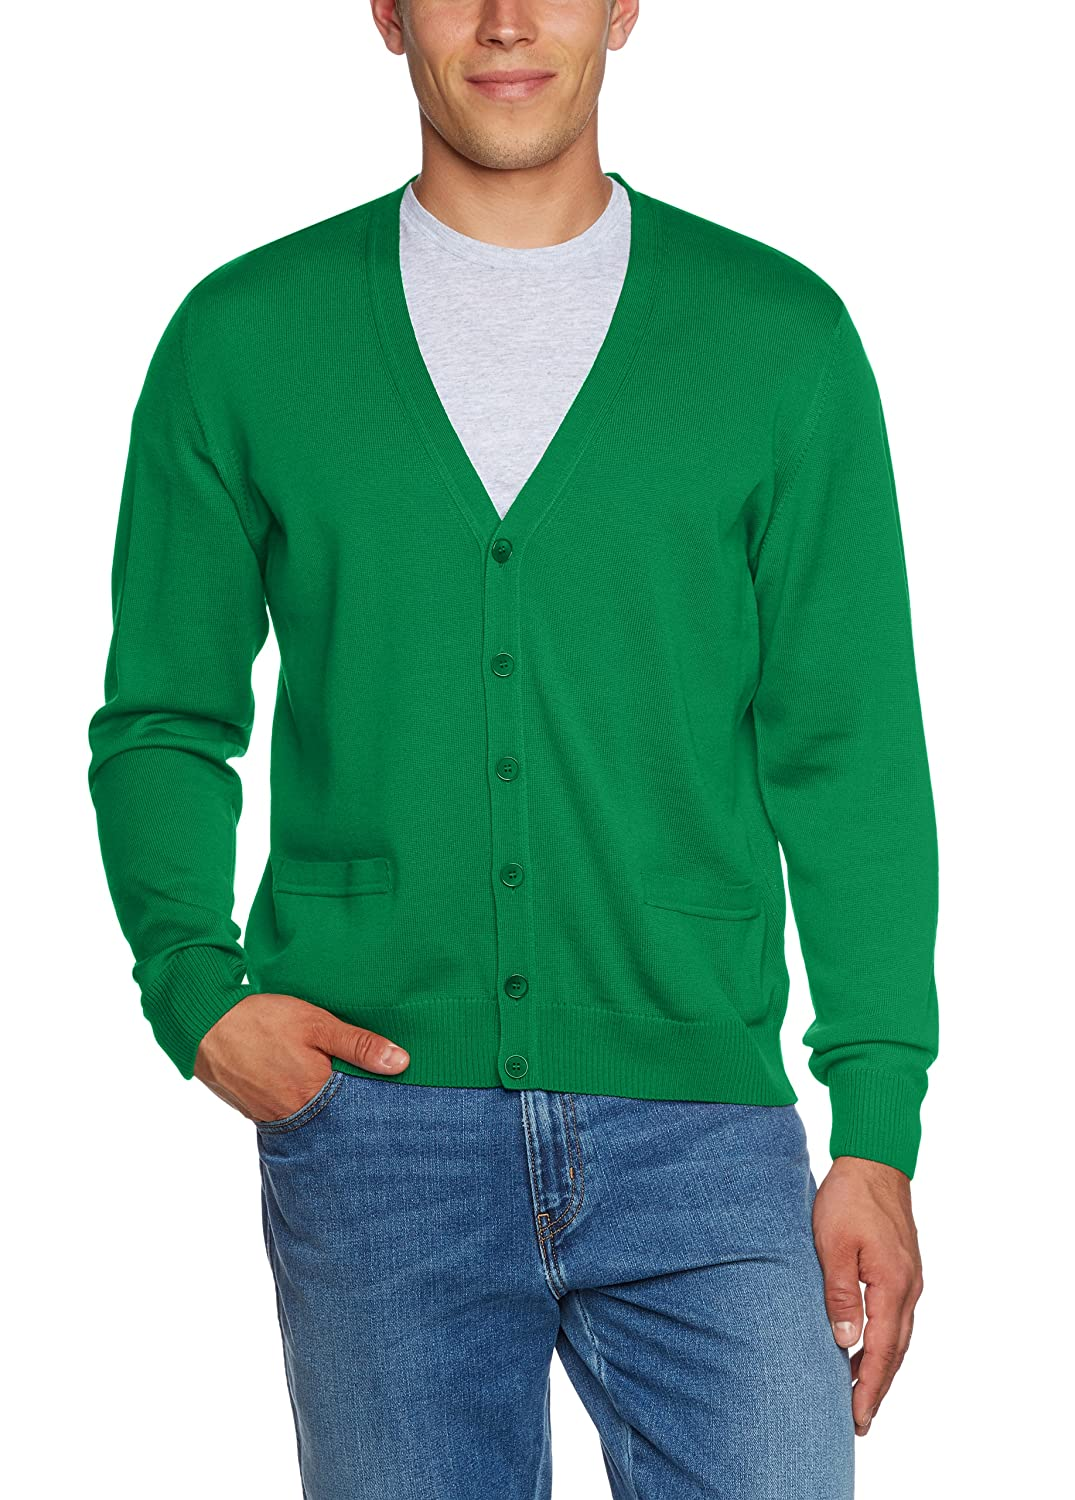 Maerz Men's 580190 Cardigan